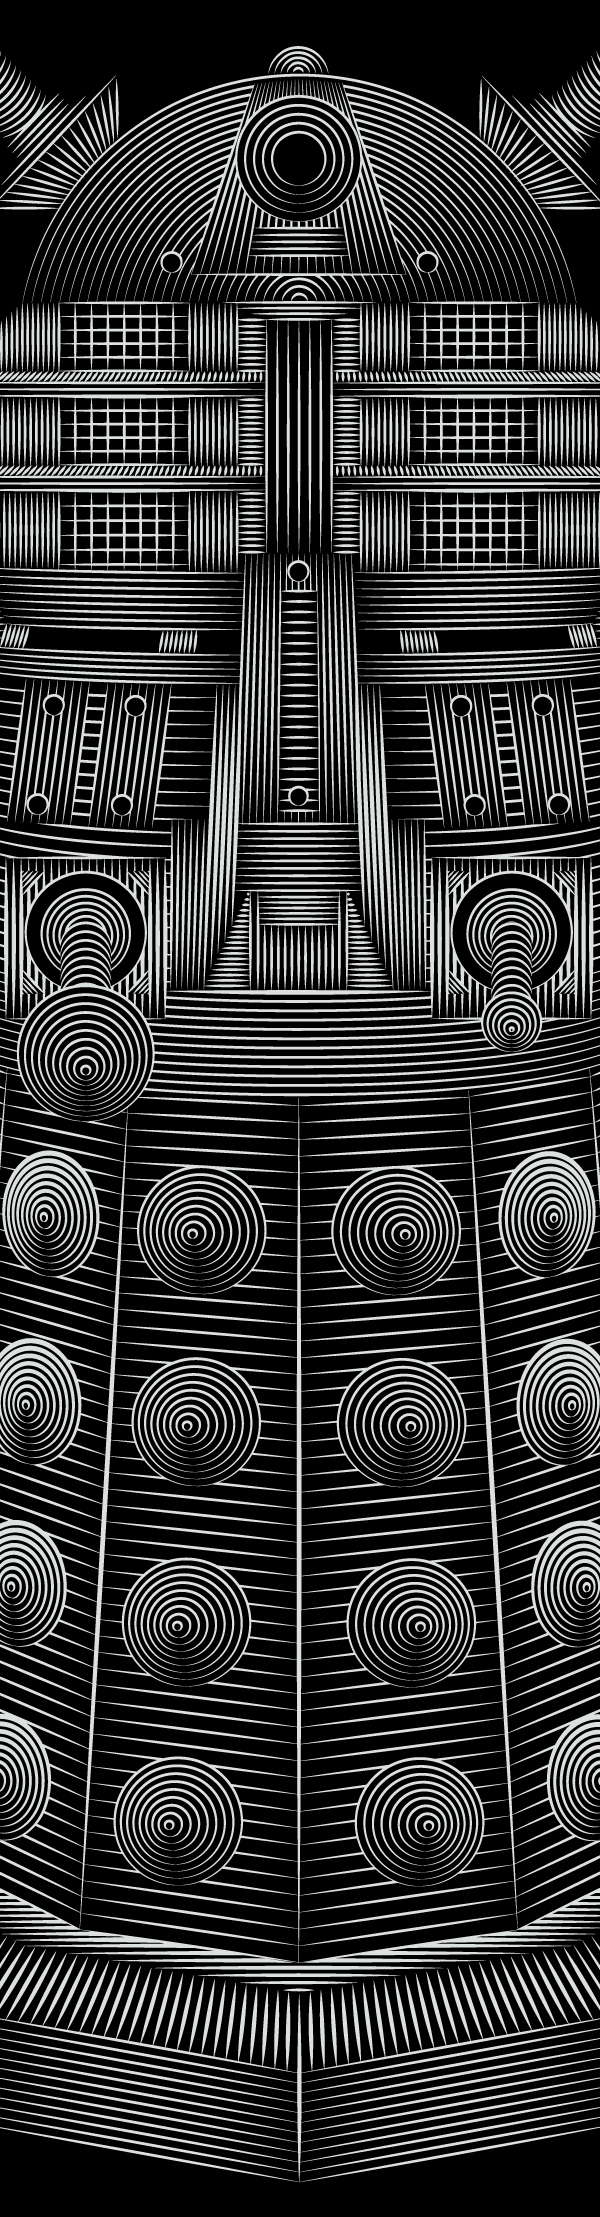 Doctor Who - Dalek (detail) by Patrick Seymour